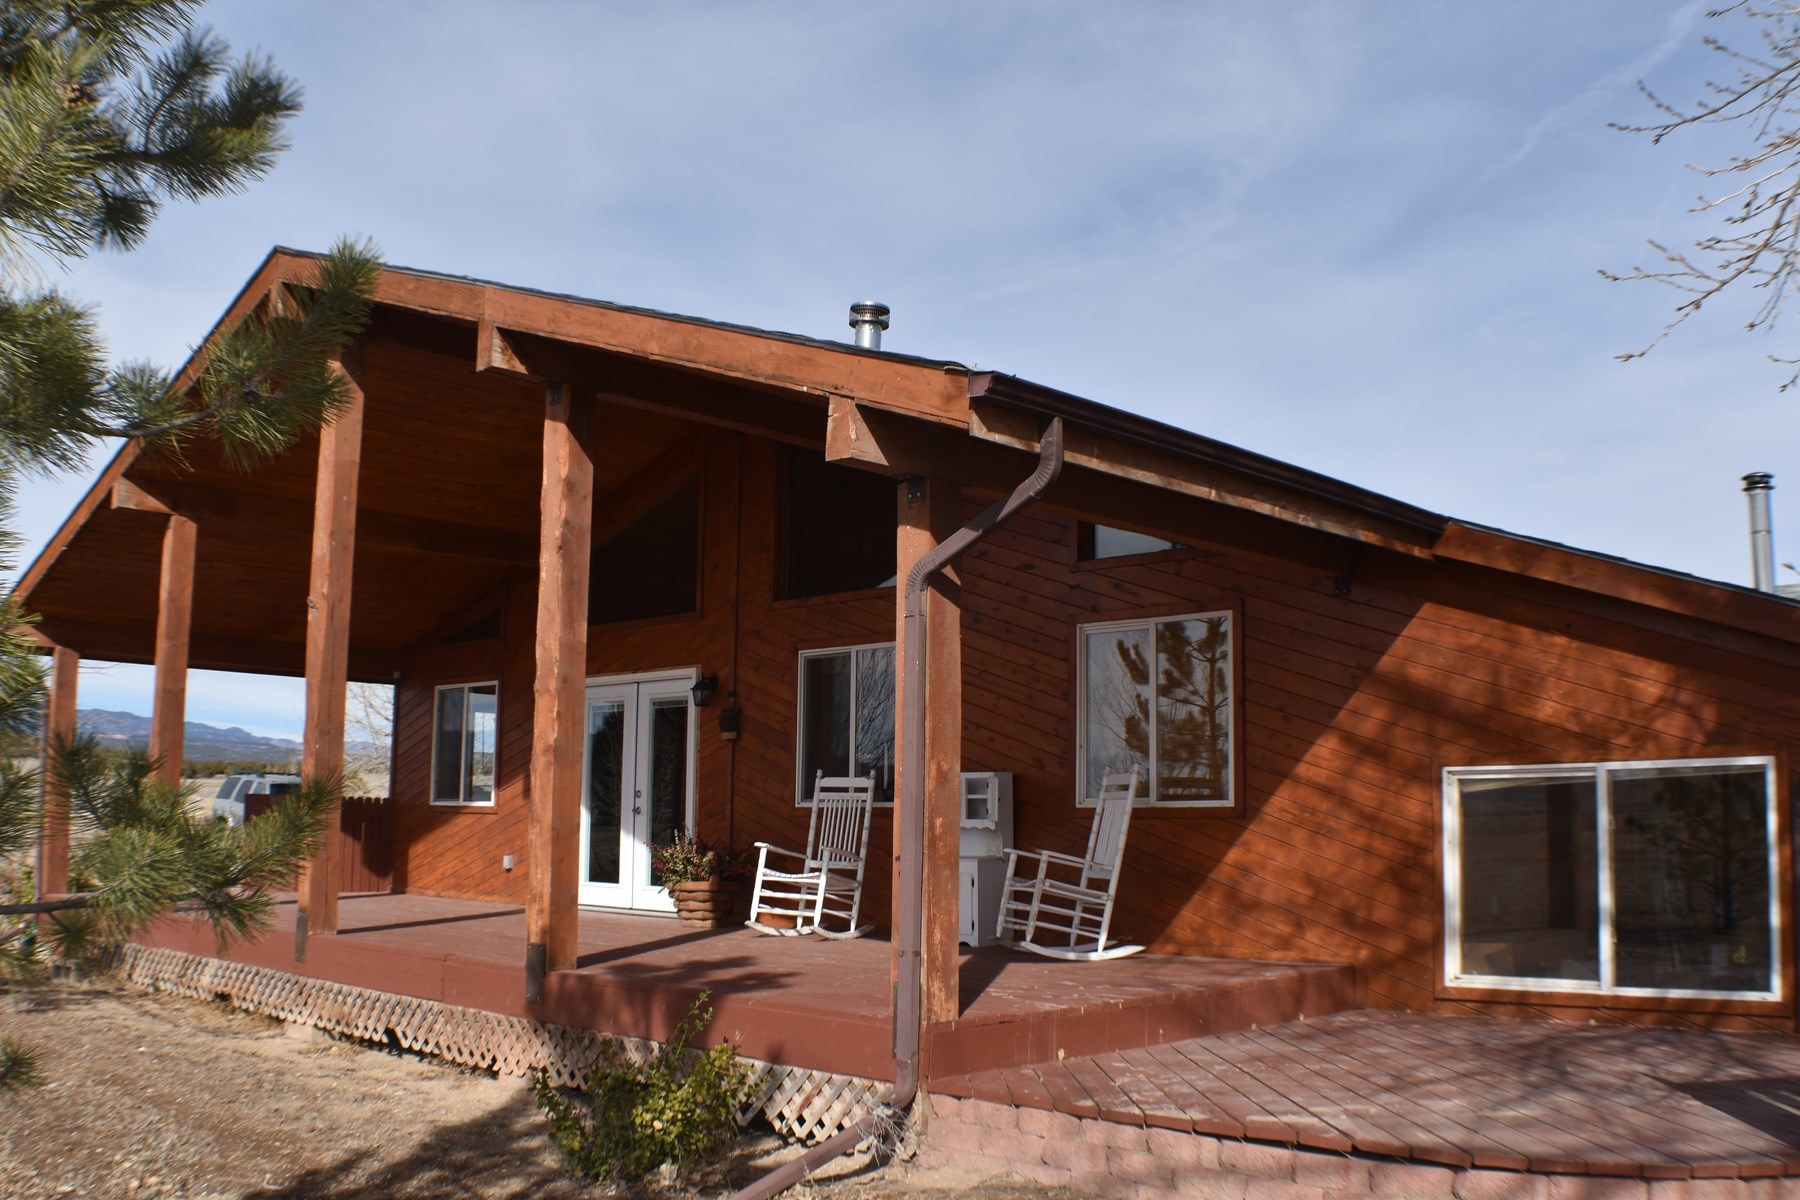 House with Land for Sale in Penrose, 30 min to Colo Springs